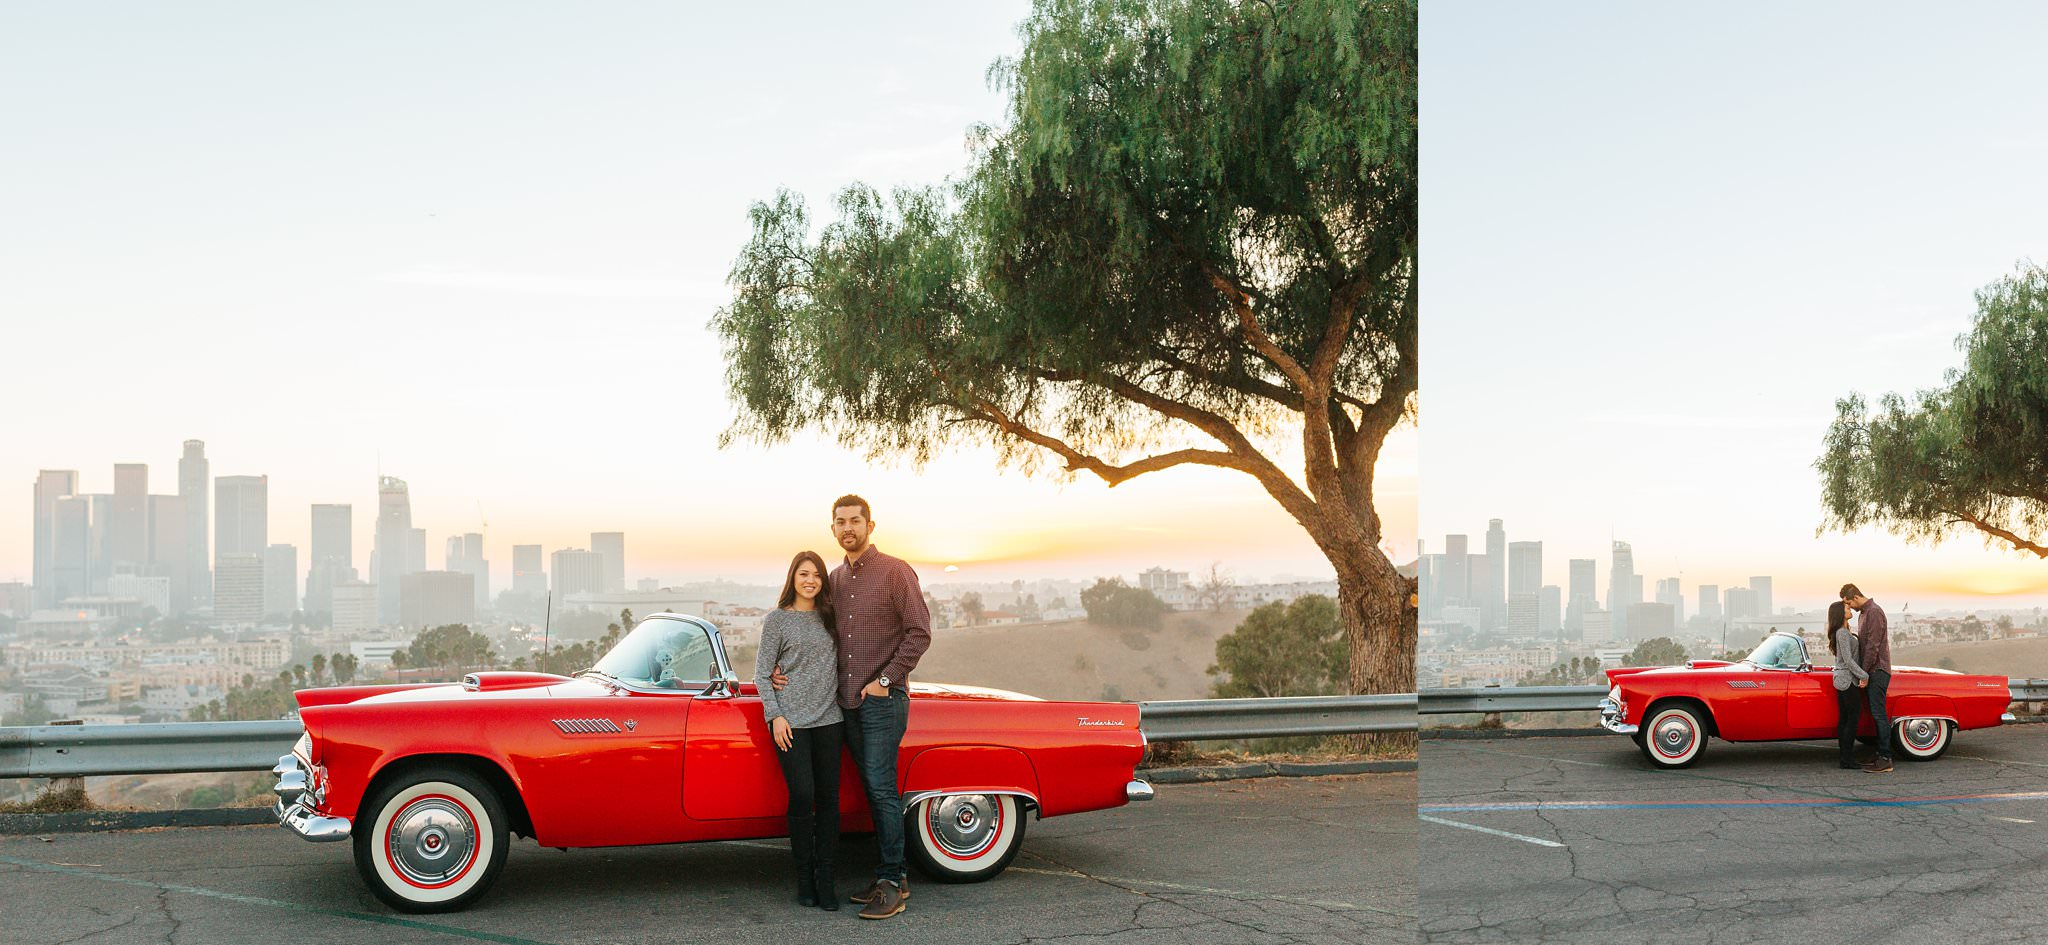 LA Skyline - Los Angeles Engagement Photographer - http://brittneyhannonphotography.com